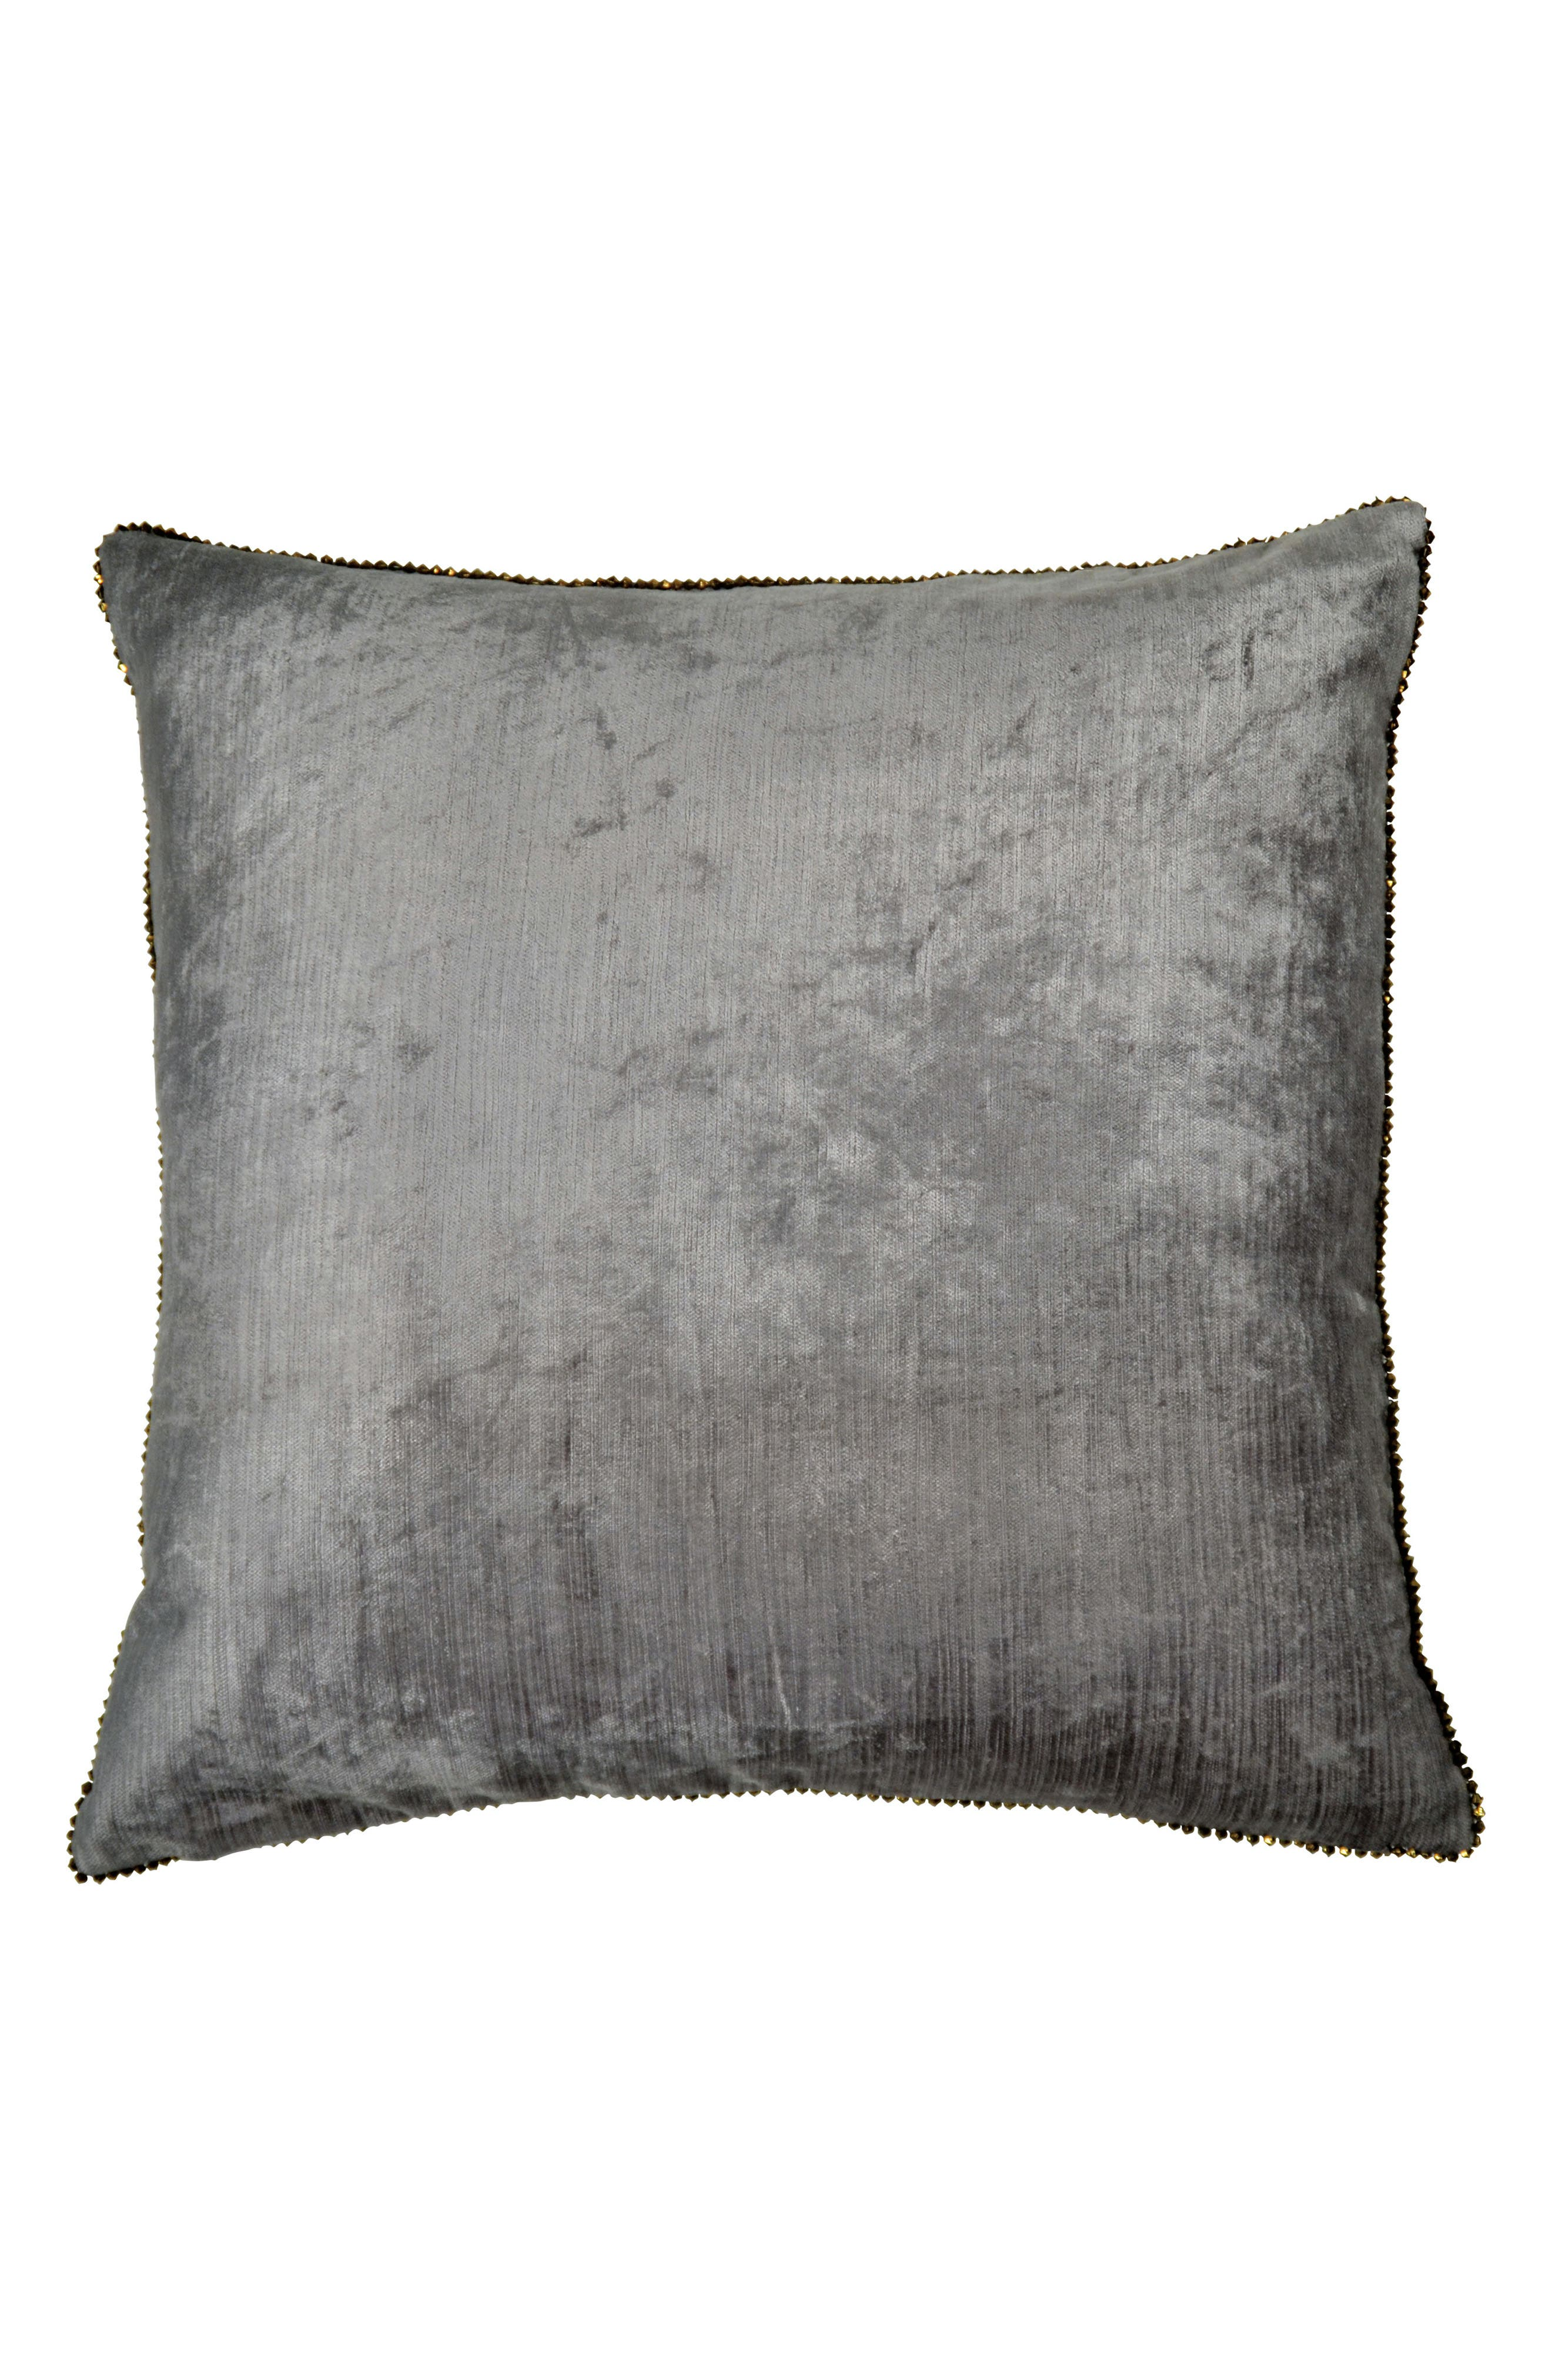 Velvet Accent Pillow,                             Main thumbnail 1, color,                             GREY